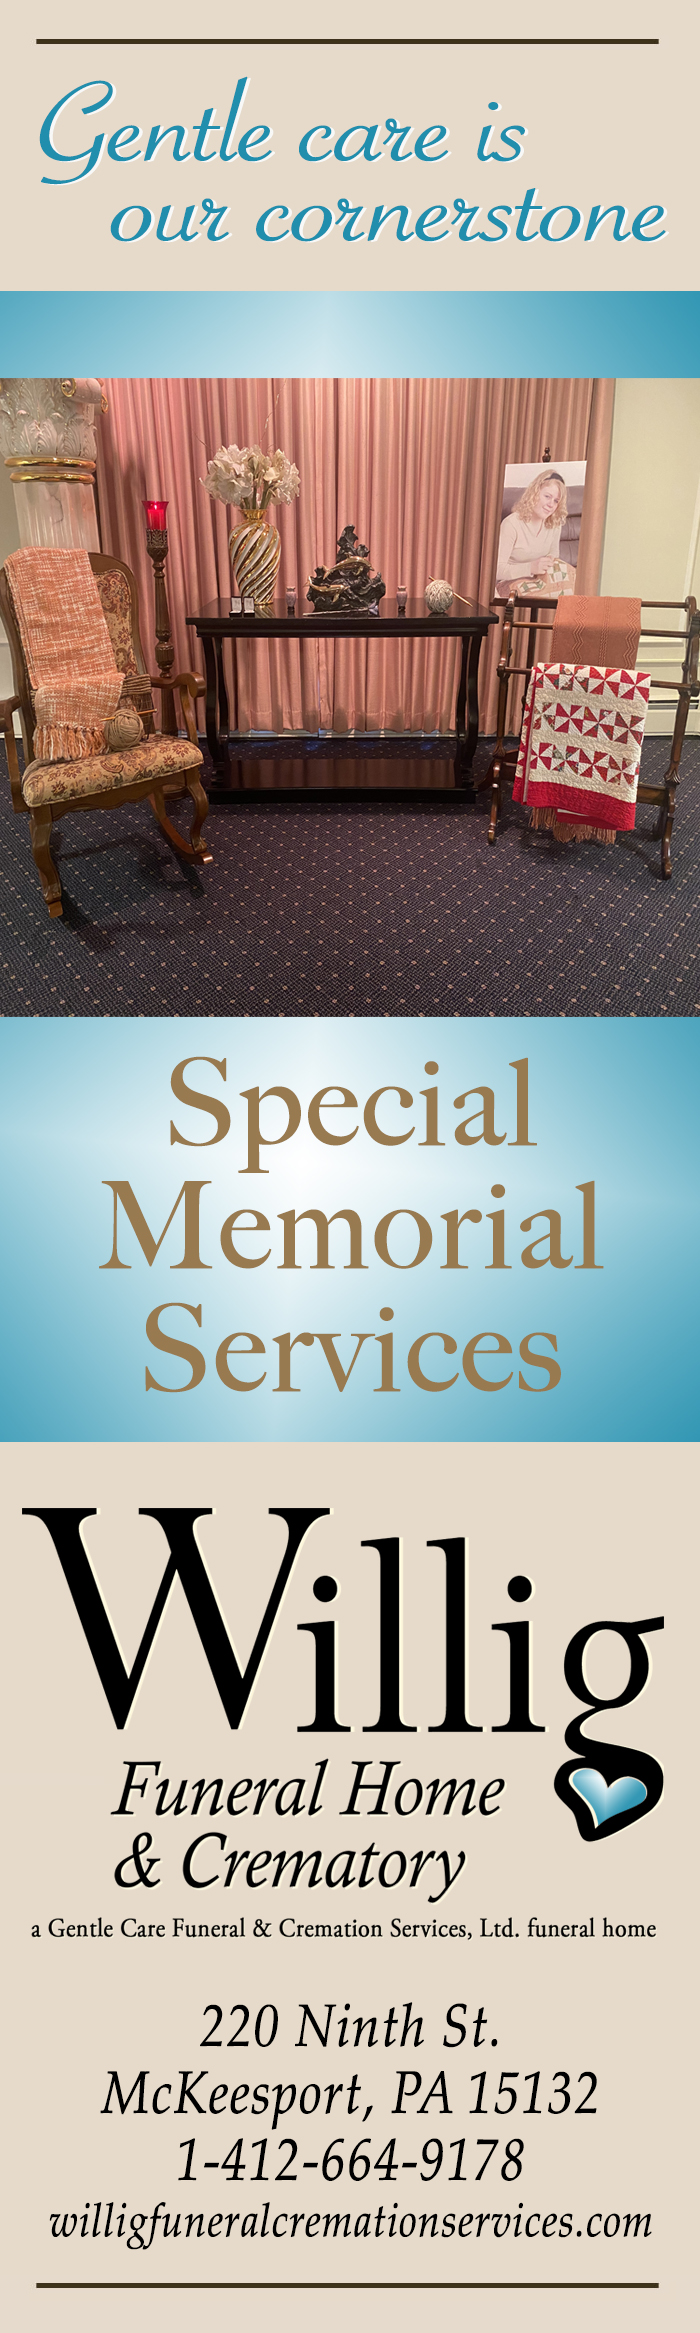 Willig Funeral Home and Crematory Services